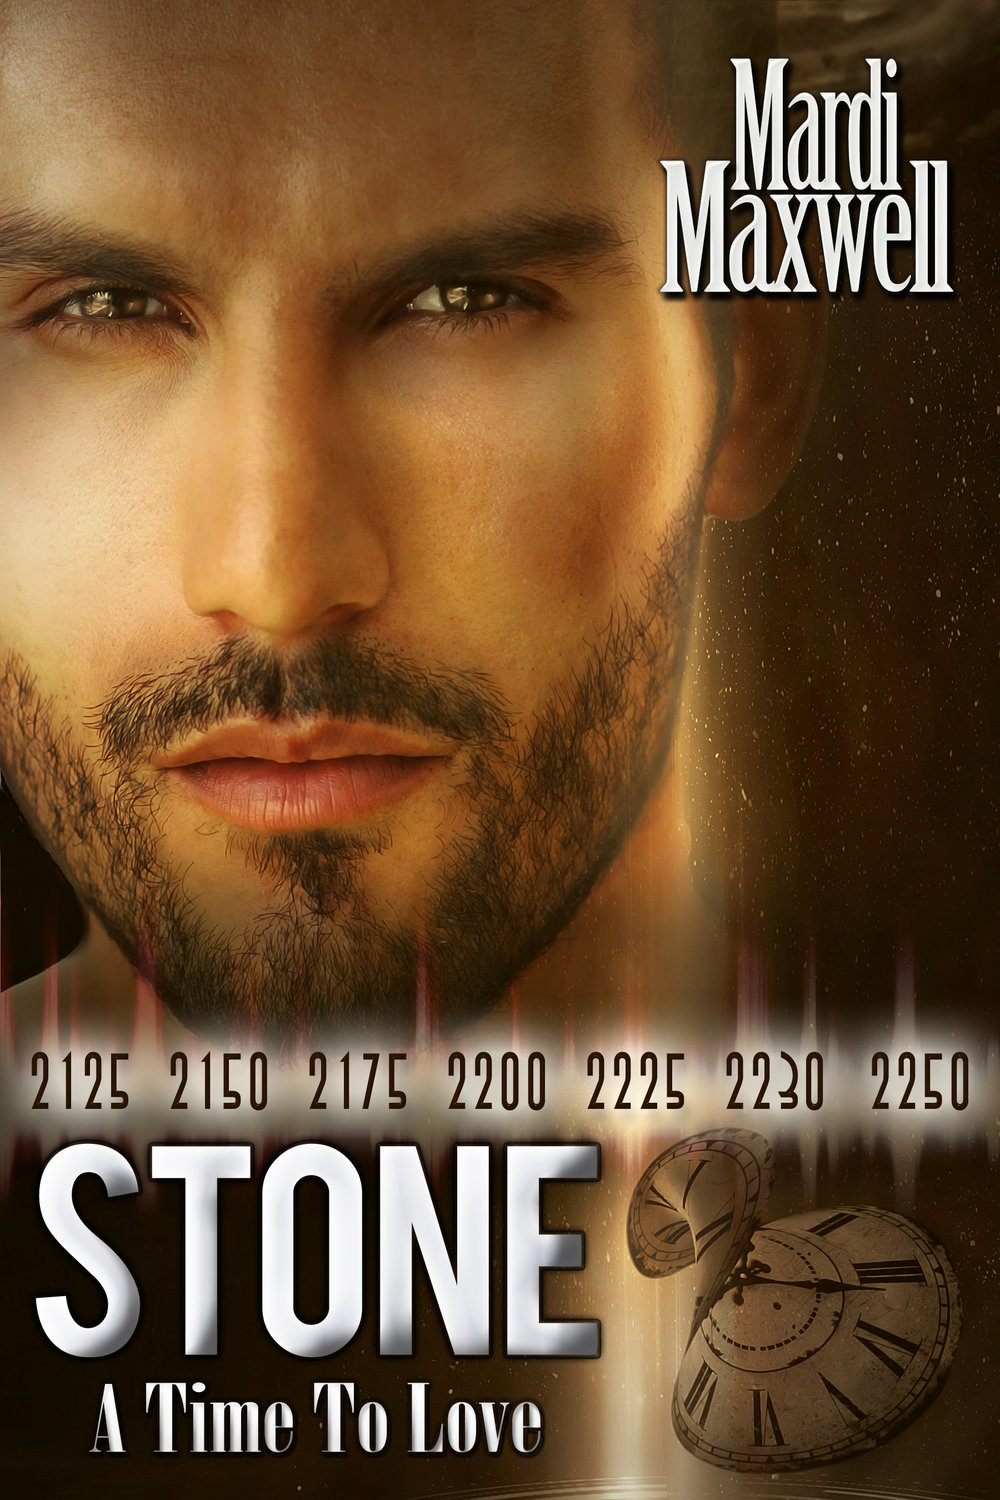 Stone: A Time to Love - Lieutenant Sunny Blake has spent most of her life fighting the aliens who invaded Earth. She and her friends are losing the war and the future is bleak until they stumble upon an abandoned alien device. After several months the scientists realize that it's a teleportation and time-travel device. A plan is formed and Sunny is ordered to go back in time and bring Jefferson W. Stone, one of Earth's most famous warriors.In 2125, Stone is trapped in a canyon in enemy territory, out of ammunition, mortally wounded and seconds from death. The enemy is closing in on him when an apparition appears, grabs him and whisks him away. He wakes a hundred and five years in the future, and is given a choice…stay and fight, or return to his time and die.